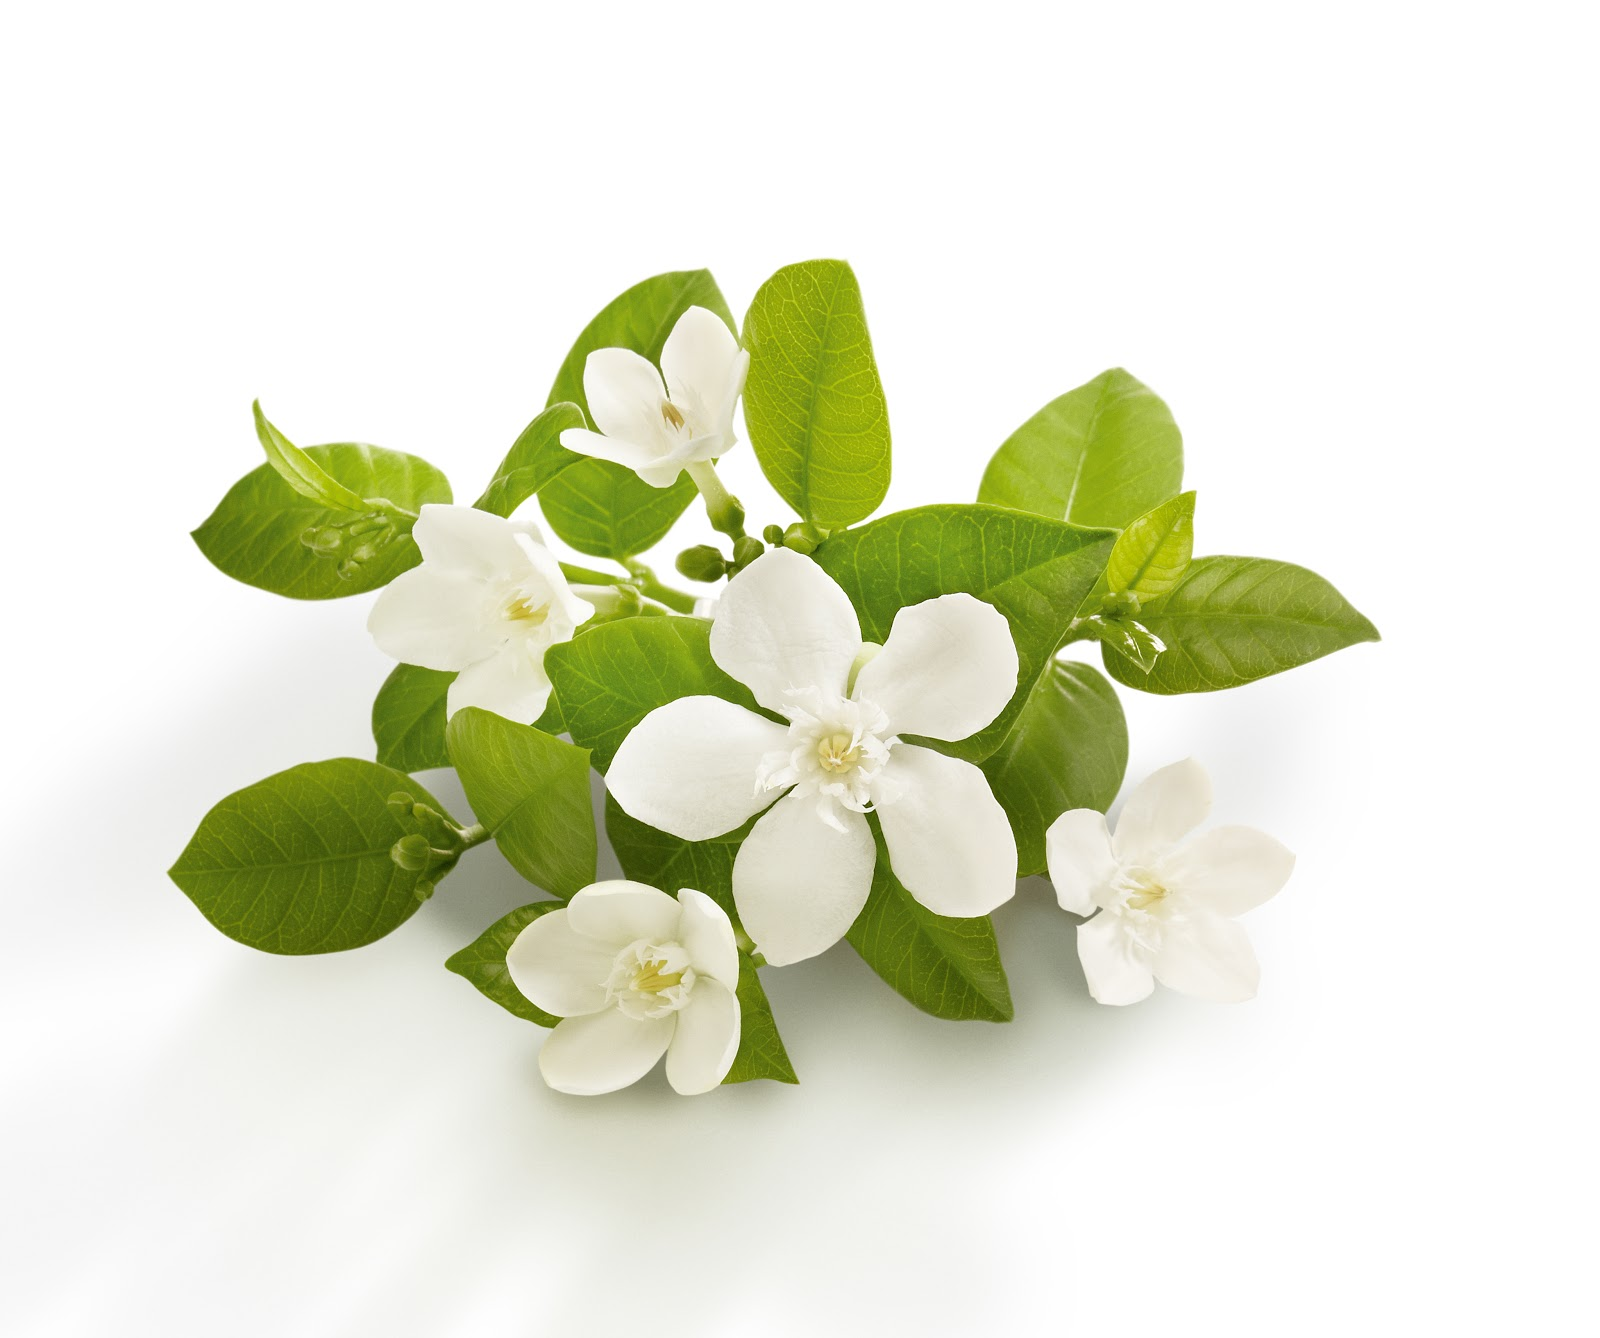 Neroli Oil Jade Balden